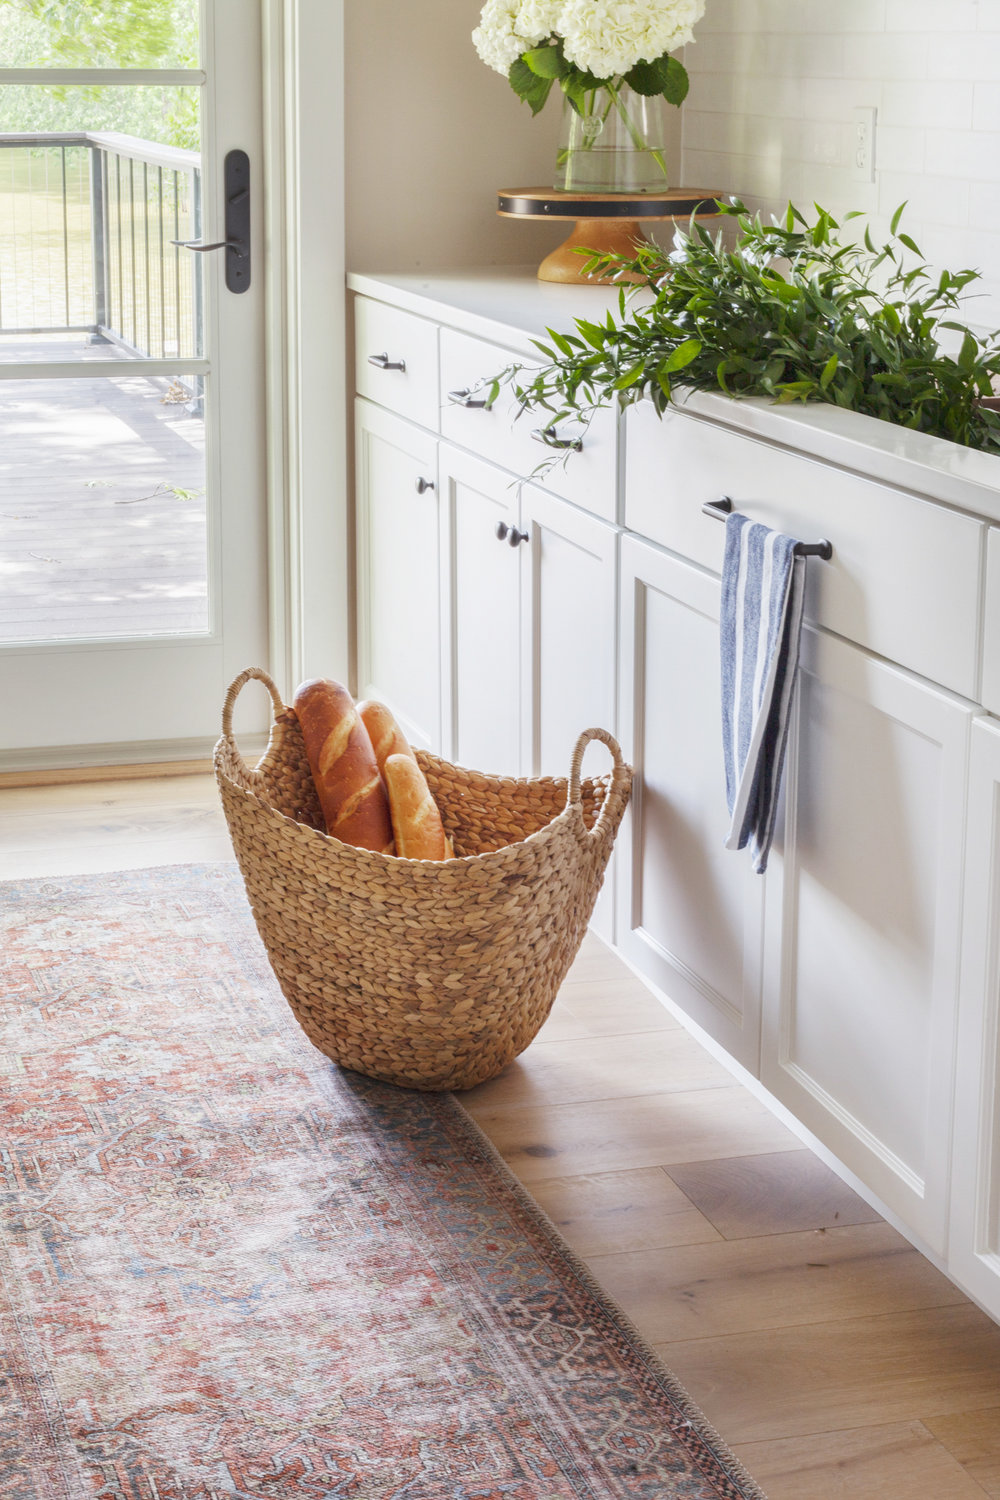 before-and-after-home-reveal-scout-and-nimble-lake-view-luxe-country-interior-design-butlers-pantry-kitchen-runner-loren-rug-22.jpg